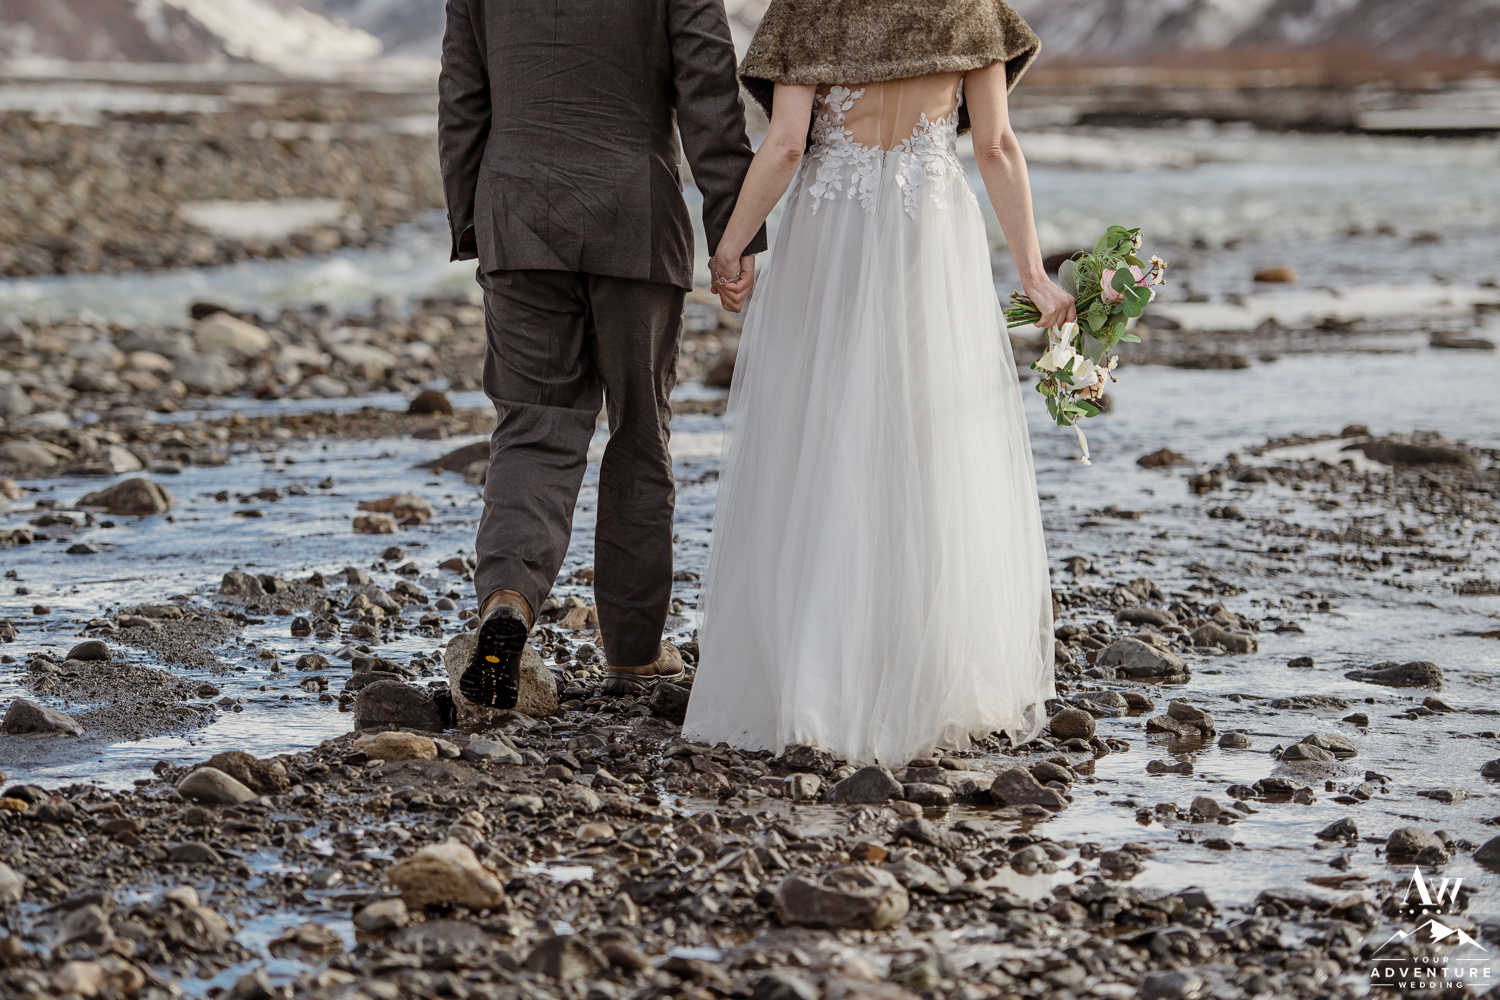 Adventurous Elopement couple in Iceland